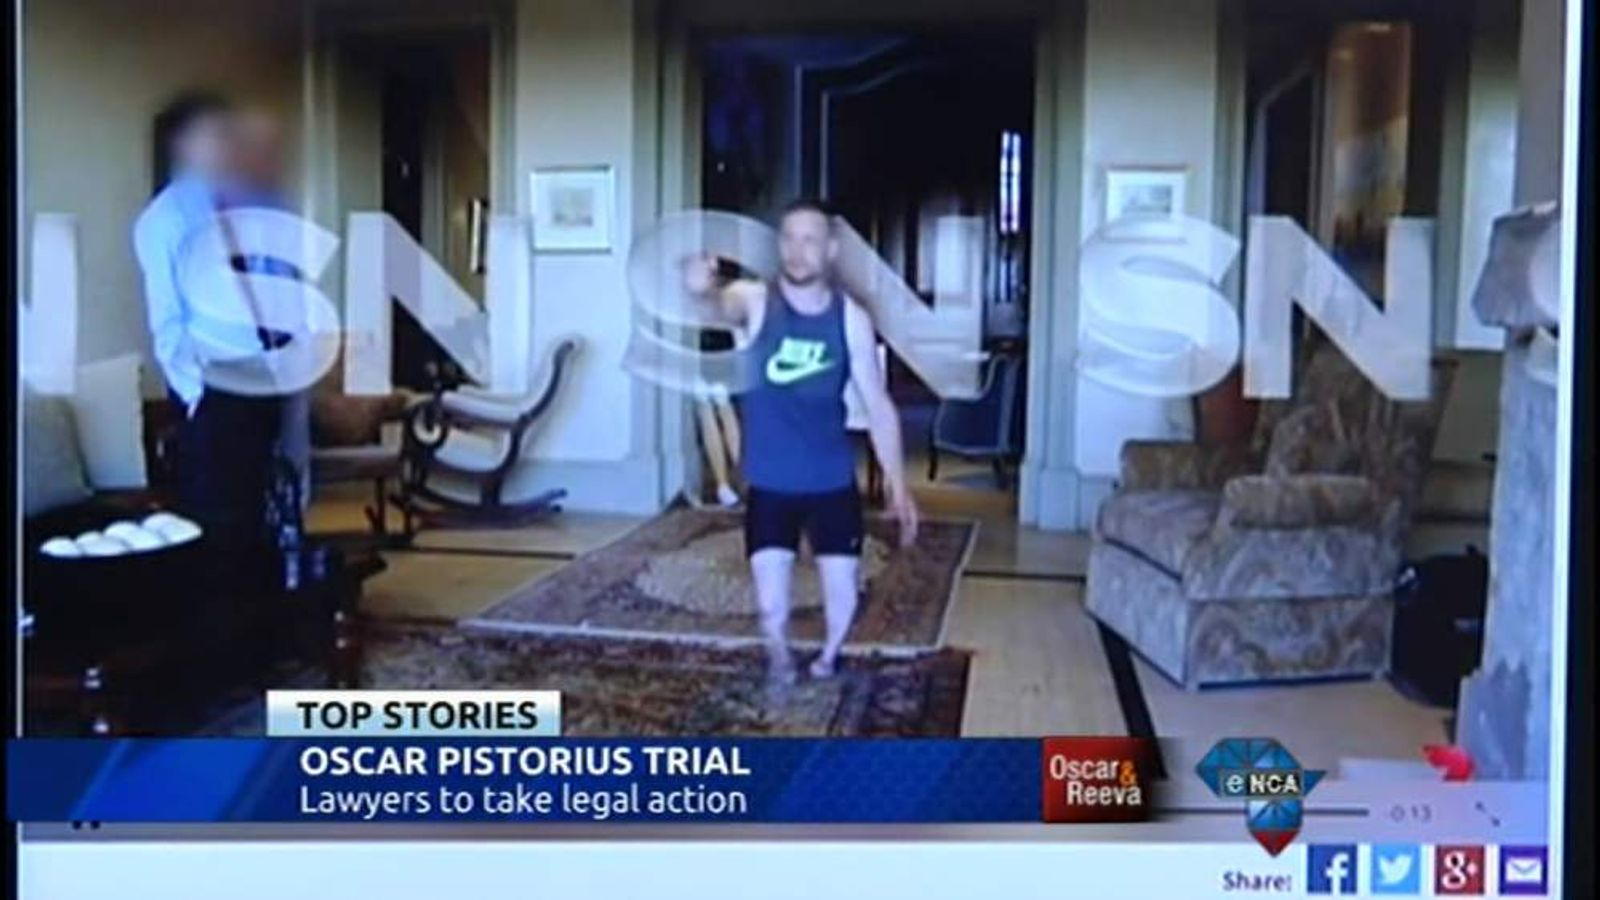 Oscar Pistorius seen re-enacting the night he shot and killed Reeva Steenkamp.